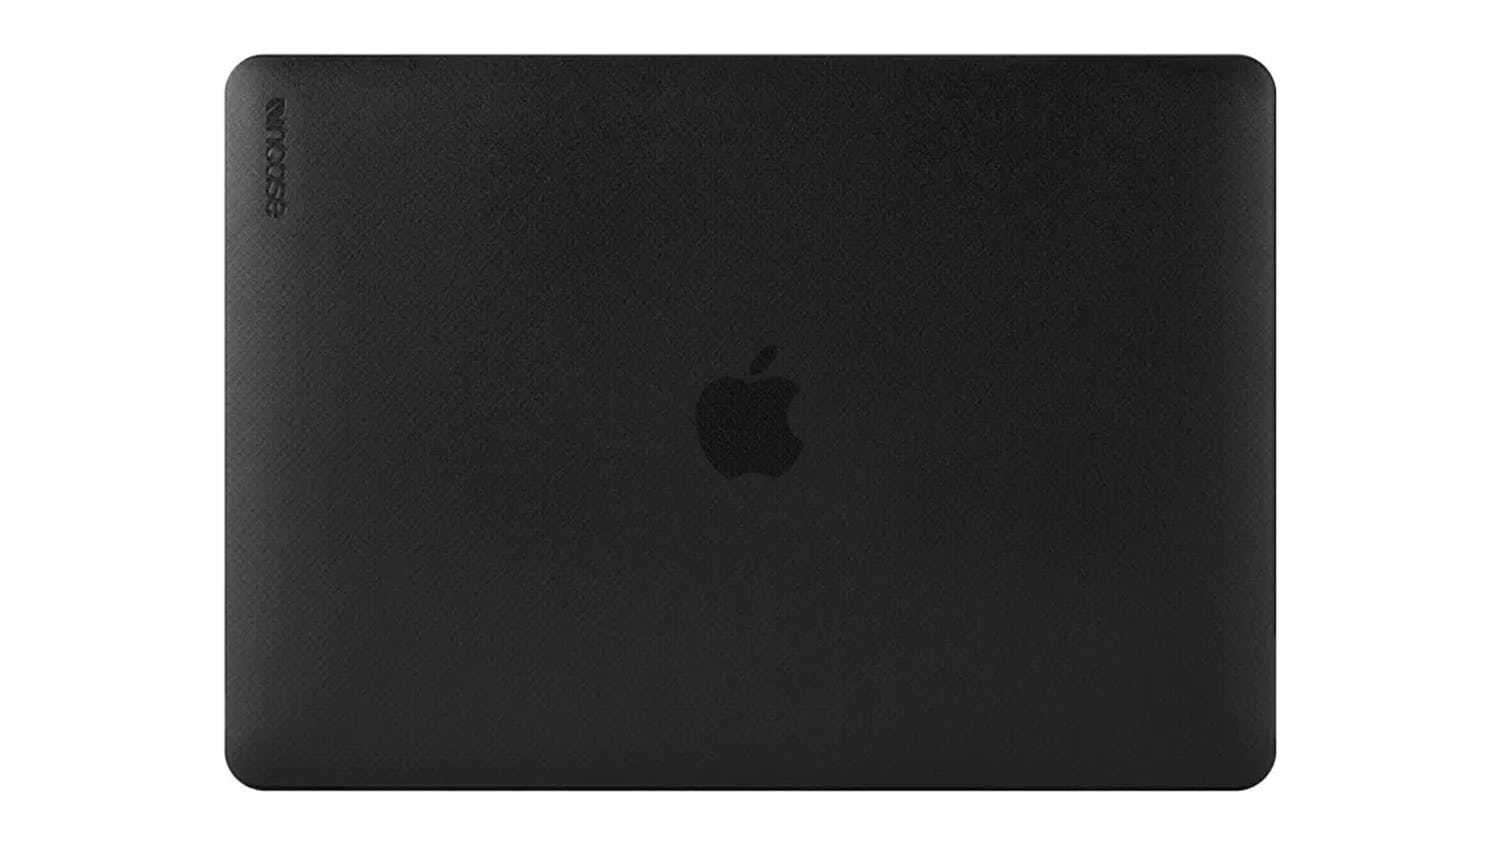 Incase Hardshell Case for 13-inch MacBook Air Retina - Black Frost